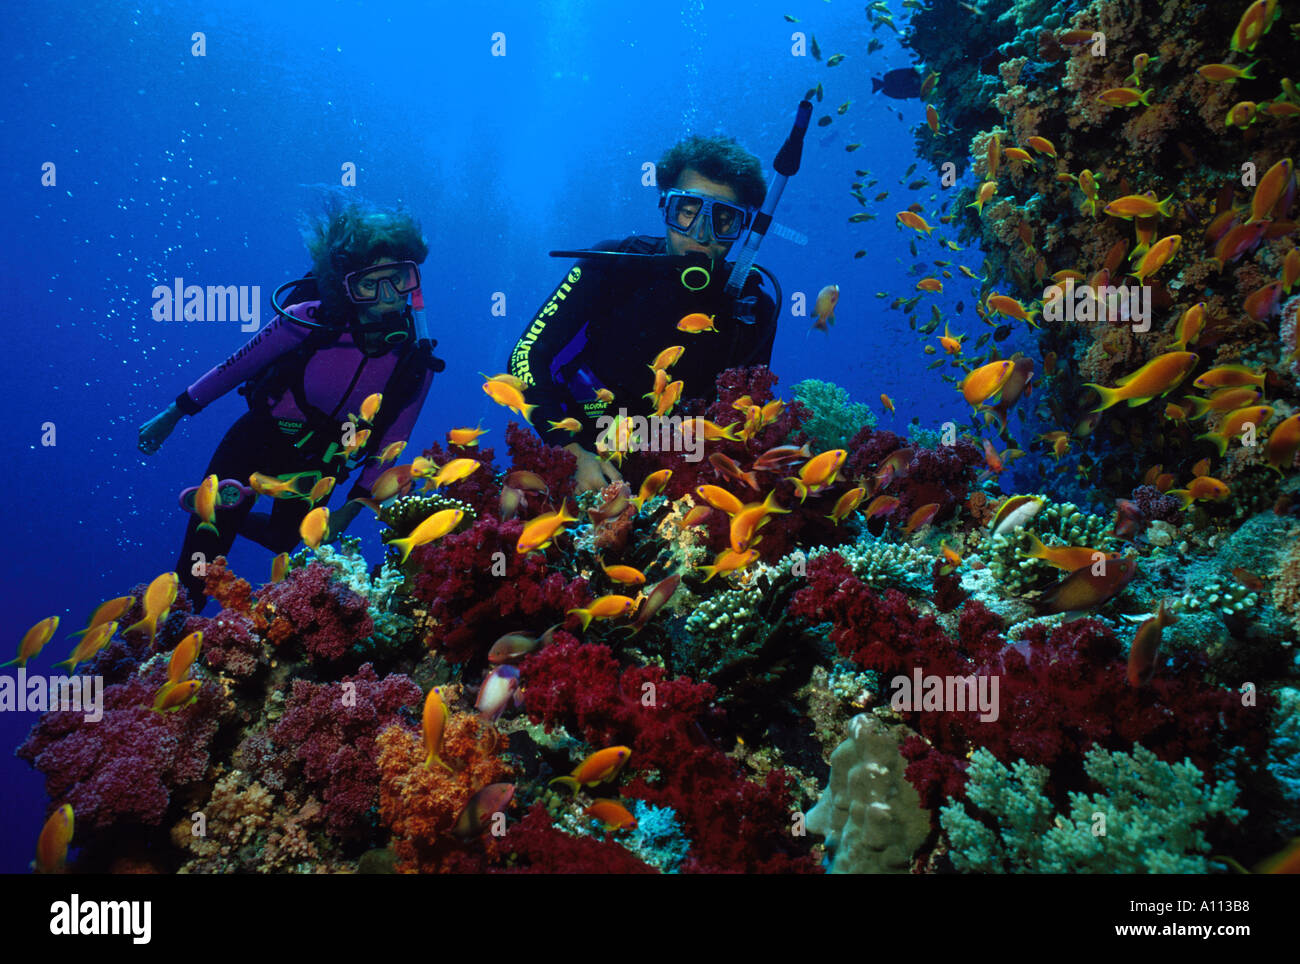 A PAIR OF SCUBA DIVERS GAZE AT A MULTI COLORED CLUSTER OF SOFT CORALS AND SCHOOLING GOLDEN ANTHIAS - Stock Image